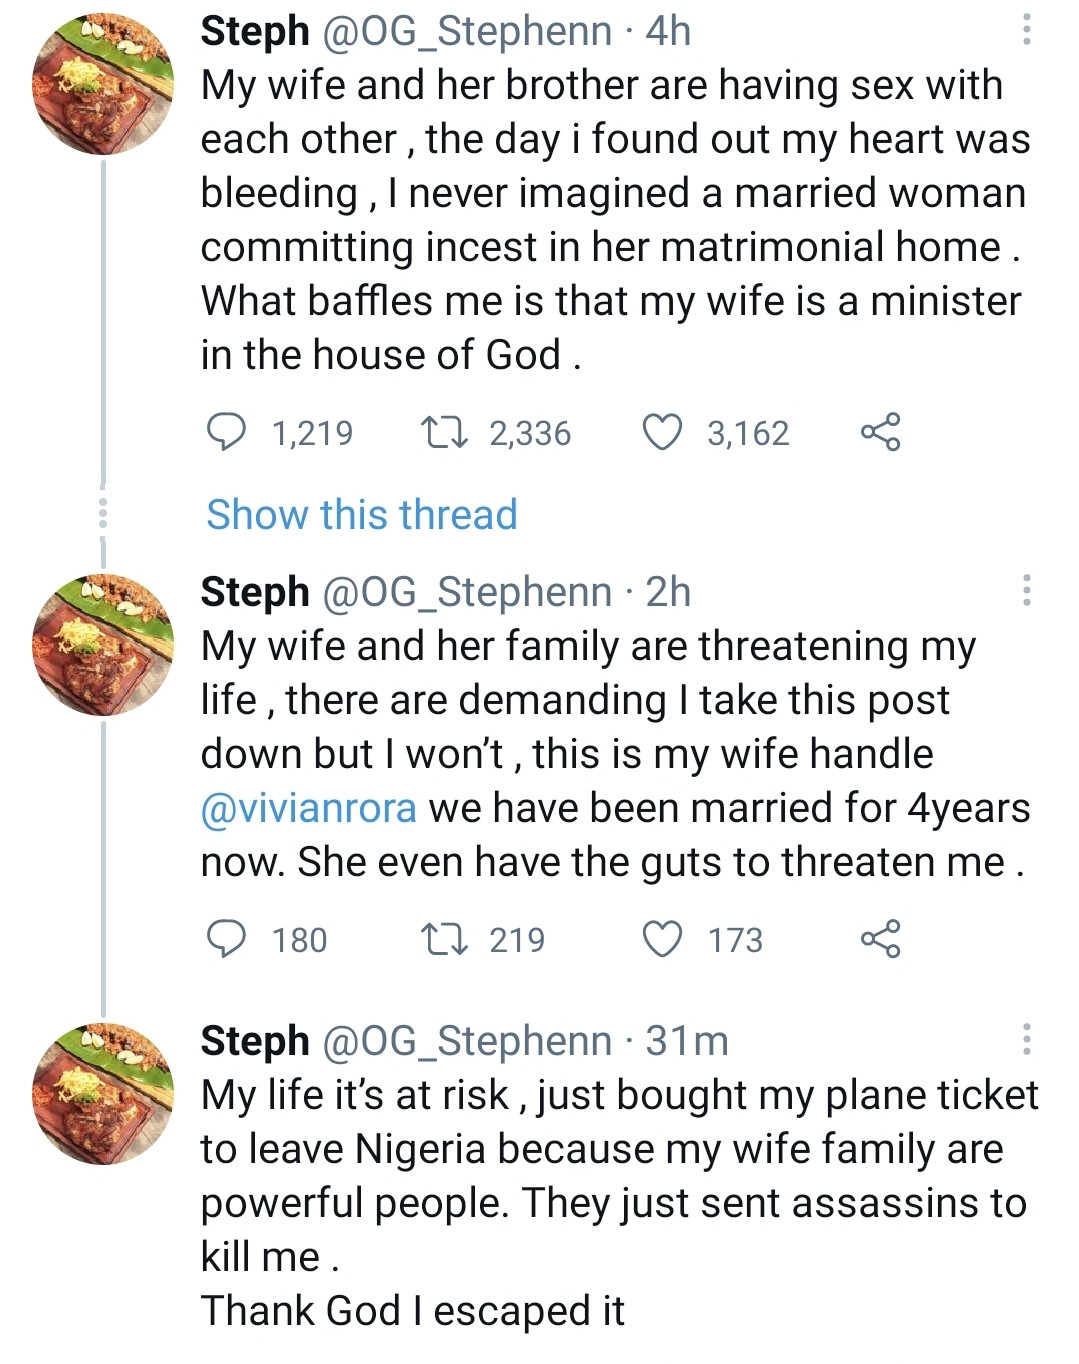 Man accuses his wife who is a pastor of having sex with her brother in their matrimonial home